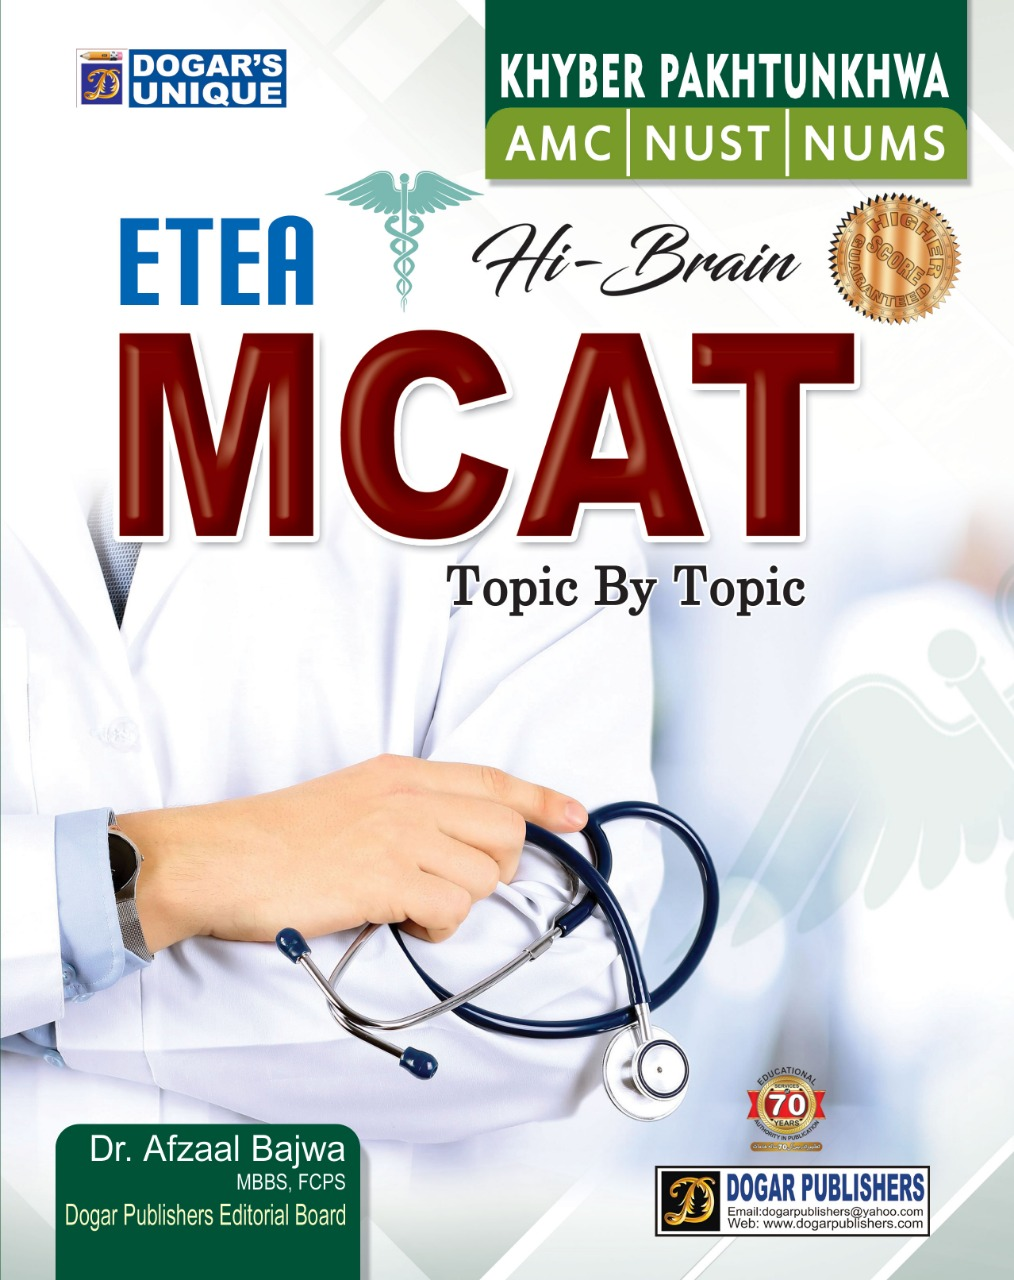 ETEA (High Brain) MCAT (Khyber pakhtunkhwa) AMC,NUST,NUMS Topic By Topic